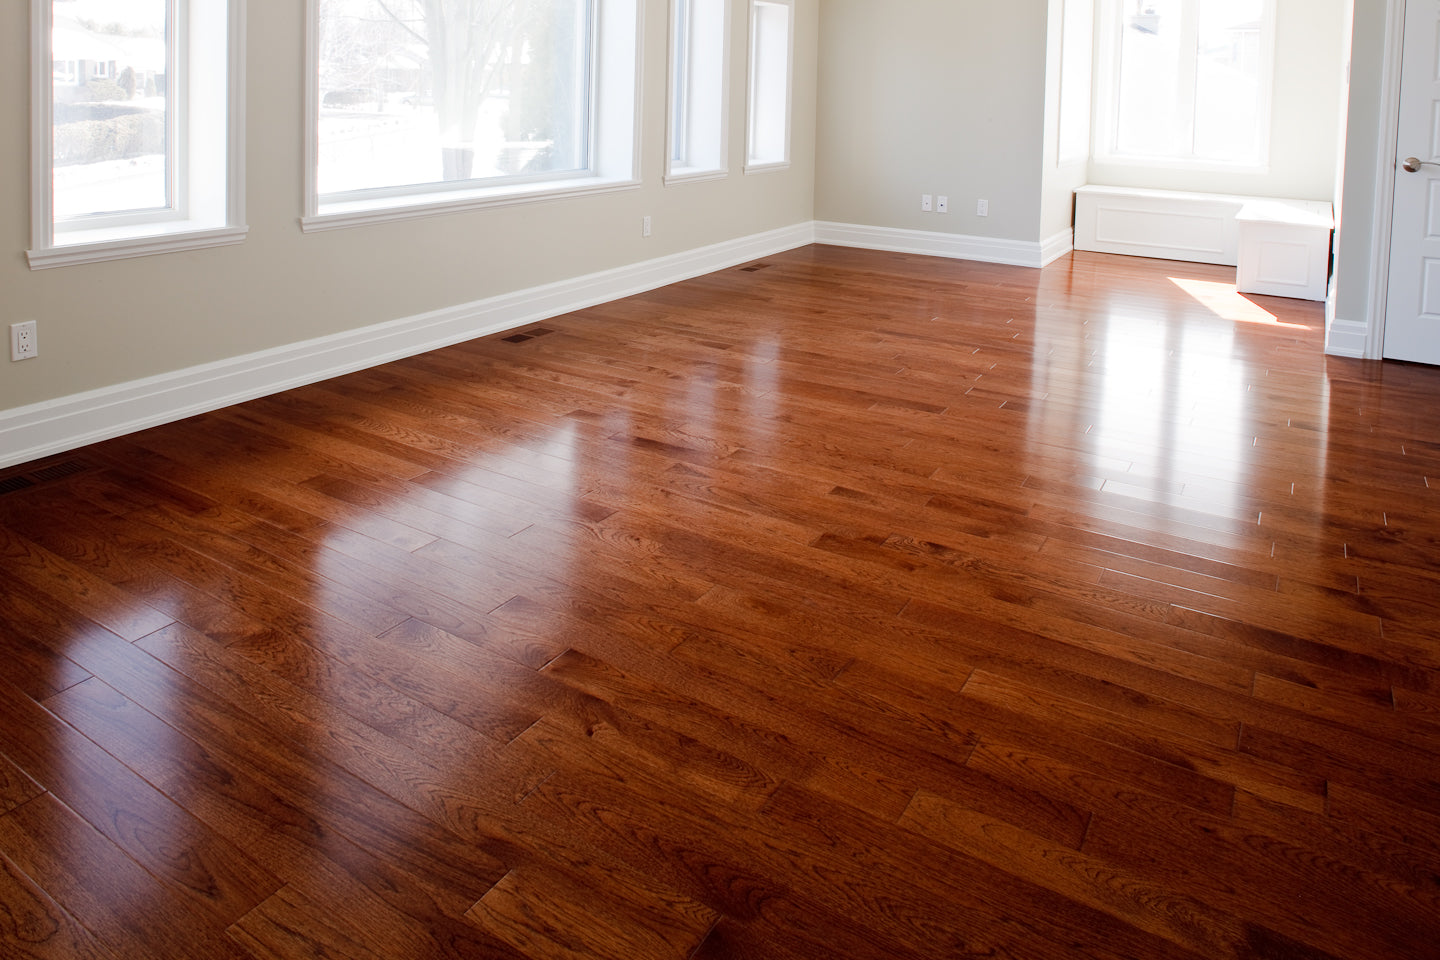 Hickory Hardwood flooring from Canada